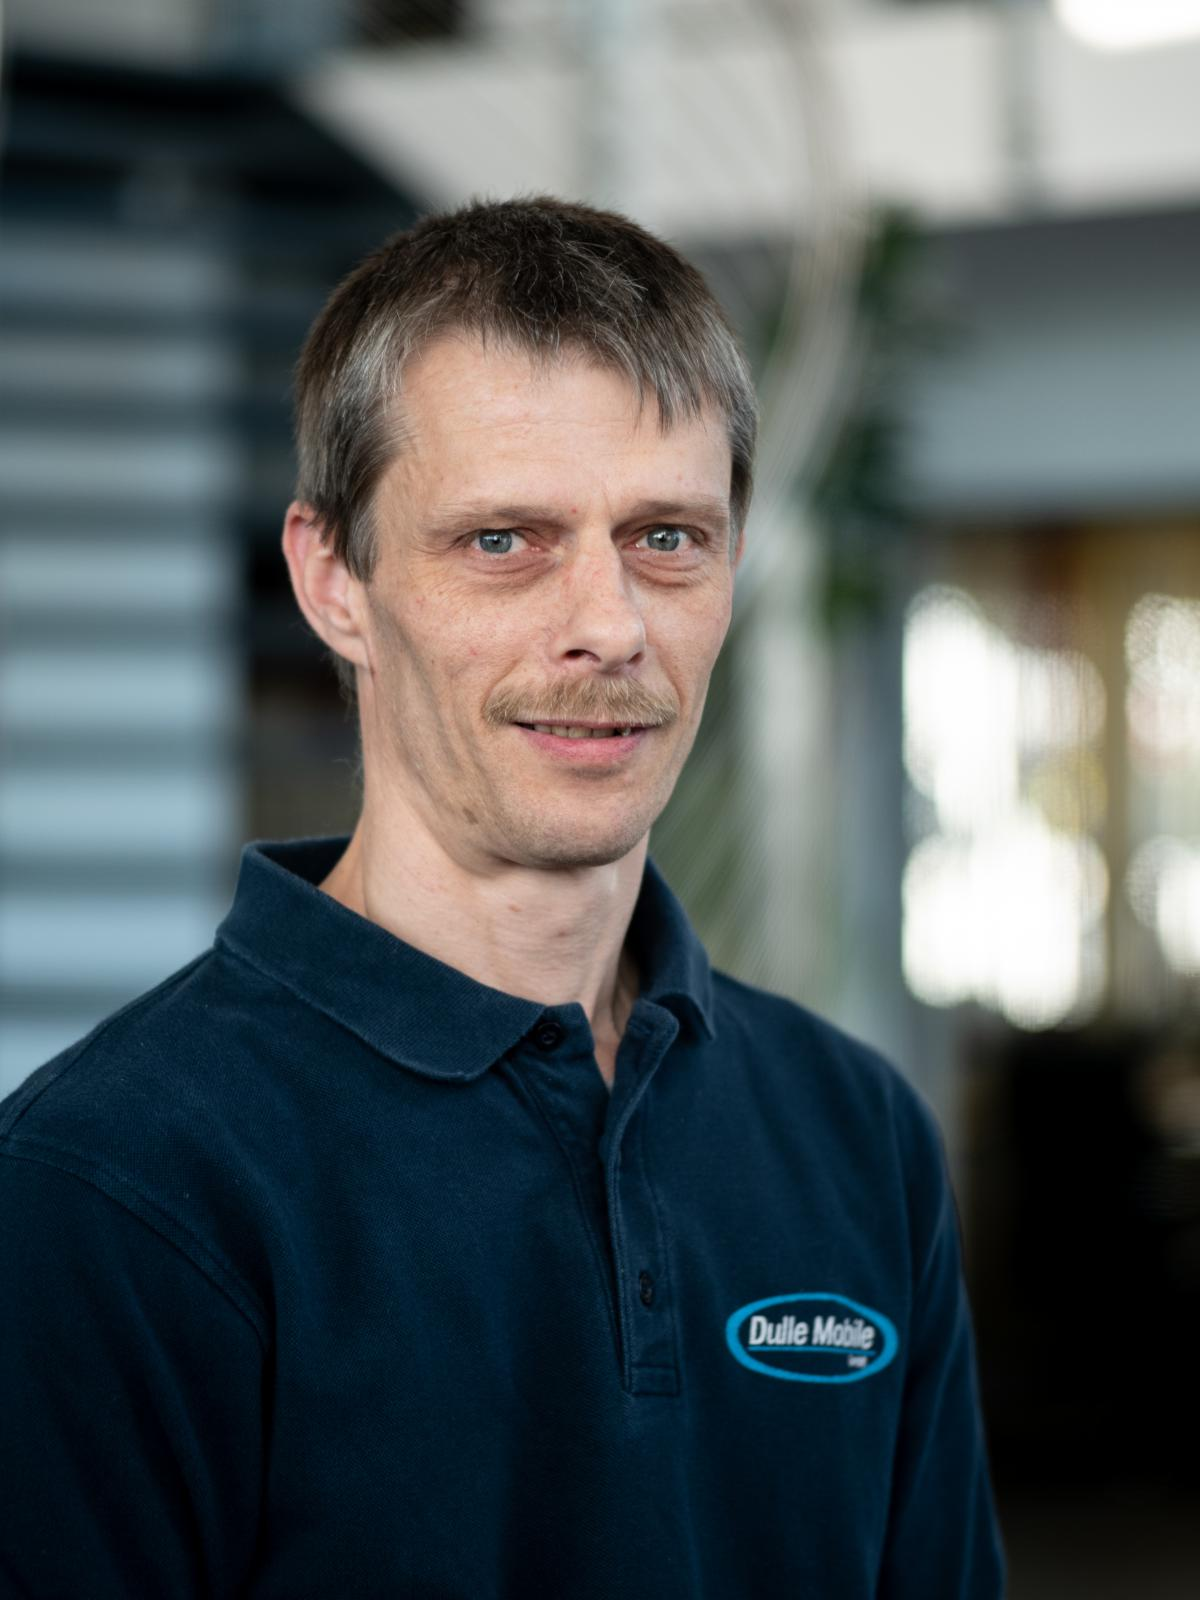 Heiko Stolle<br><h6>Workshop leader</h6>